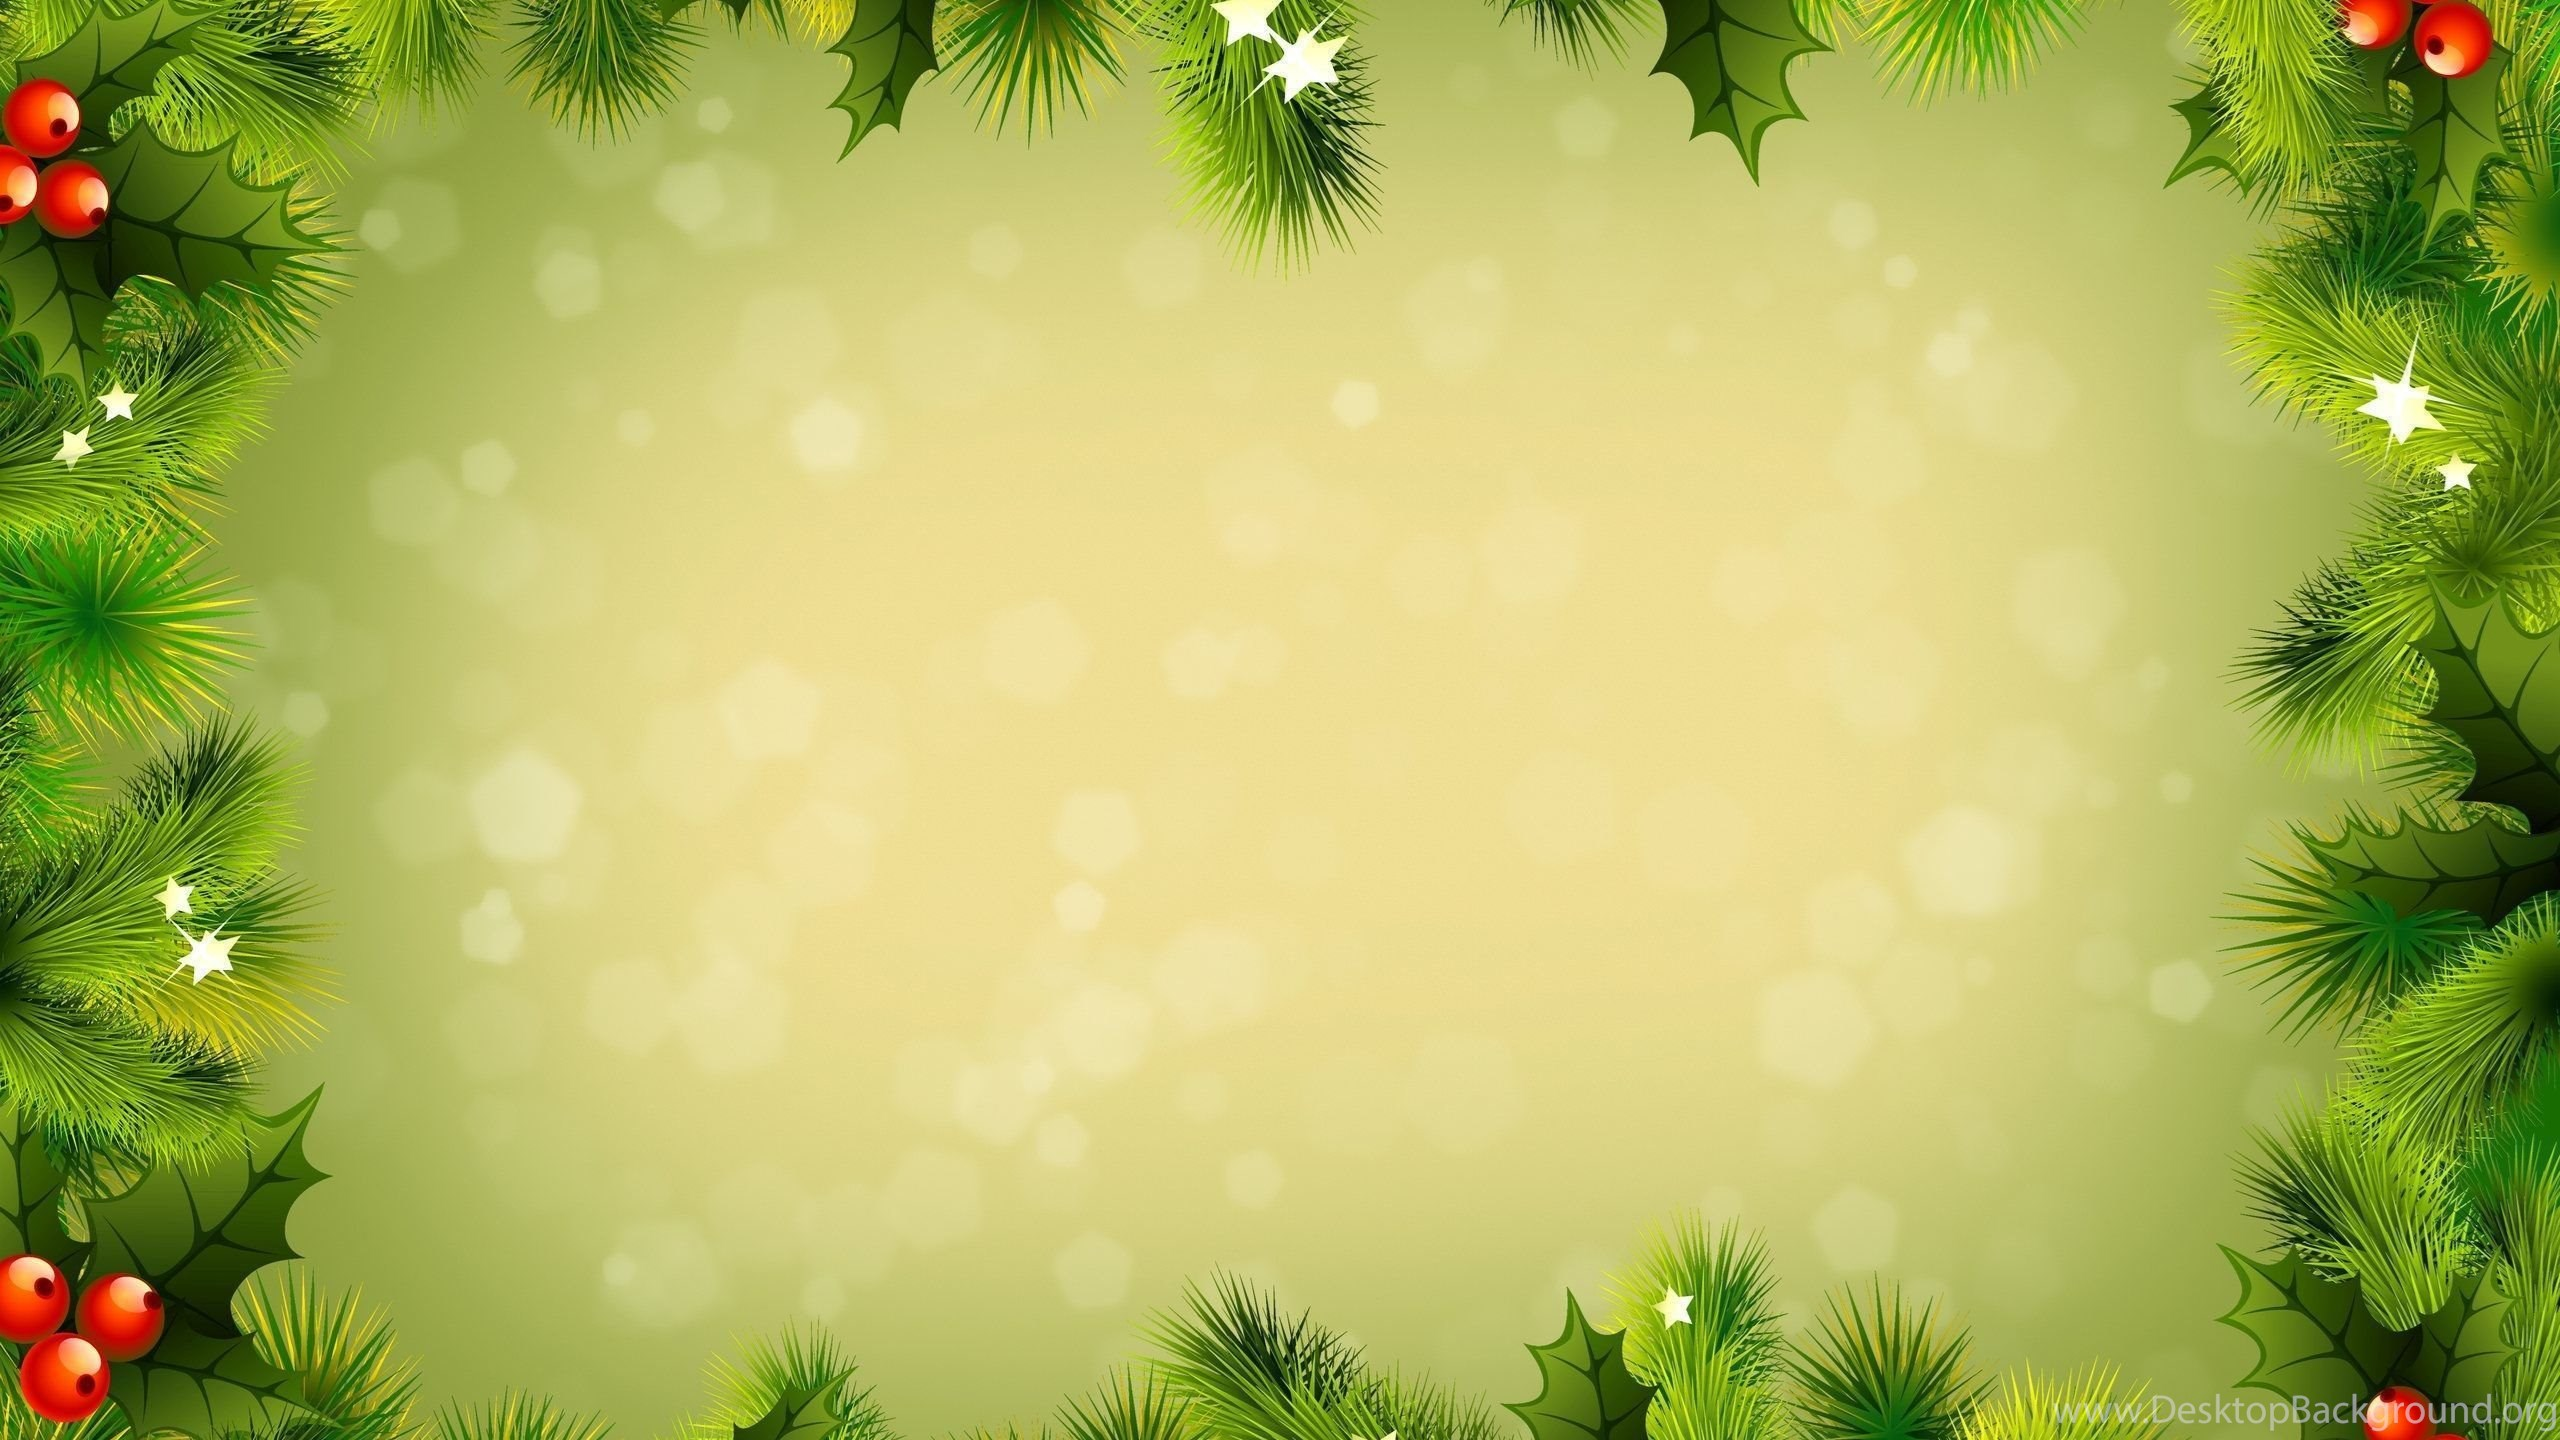 xmas backgrounds free desktop background